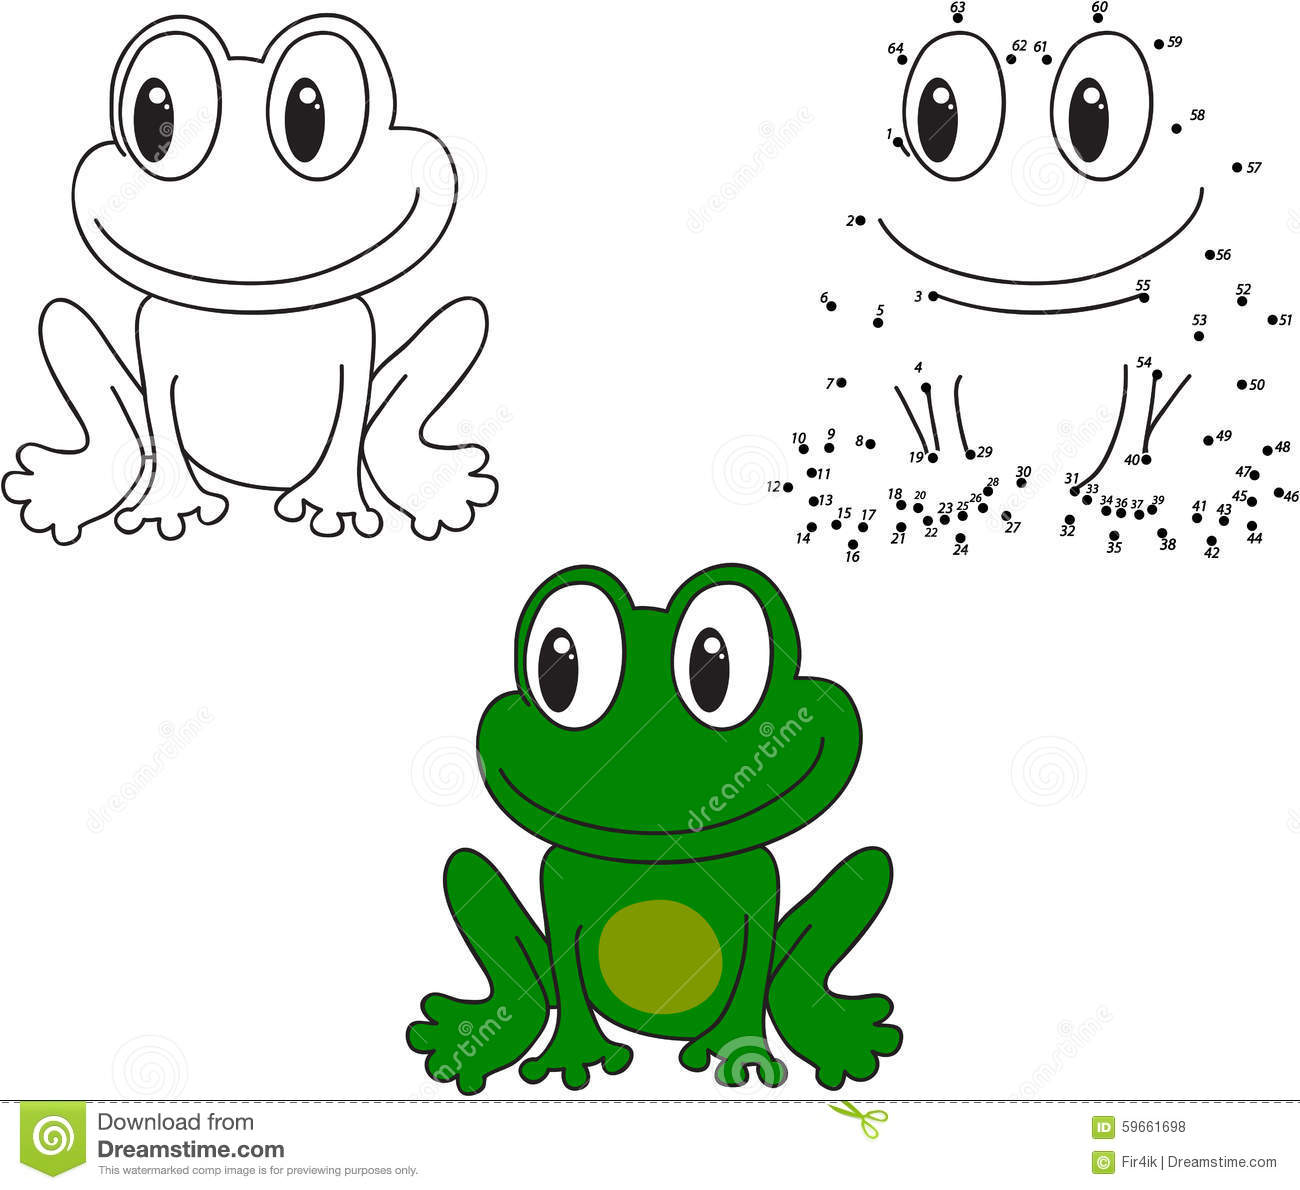 Cartoon Frog Vector Illustration Coloring And Dot To Dot